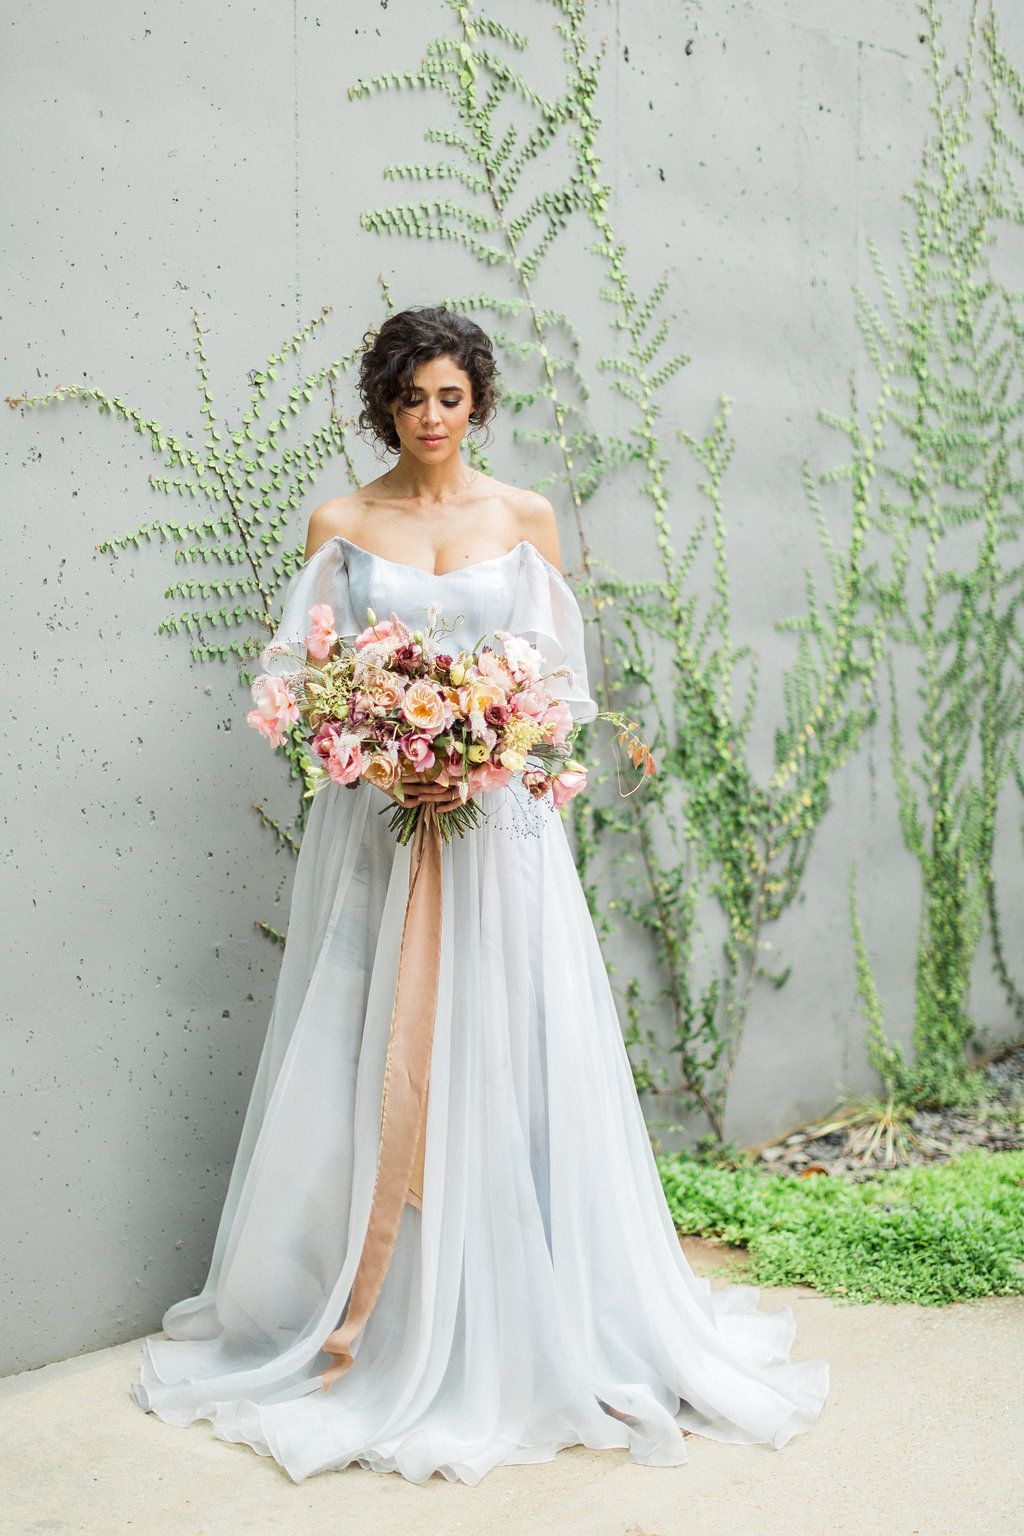 Cloudy Day Wedding Inspiration With A Hand Painted Bridal Gown Https Ruffledblog Com Painted Wedding Dress Blue Wedding Dresses Hand Painted Wedding Dress